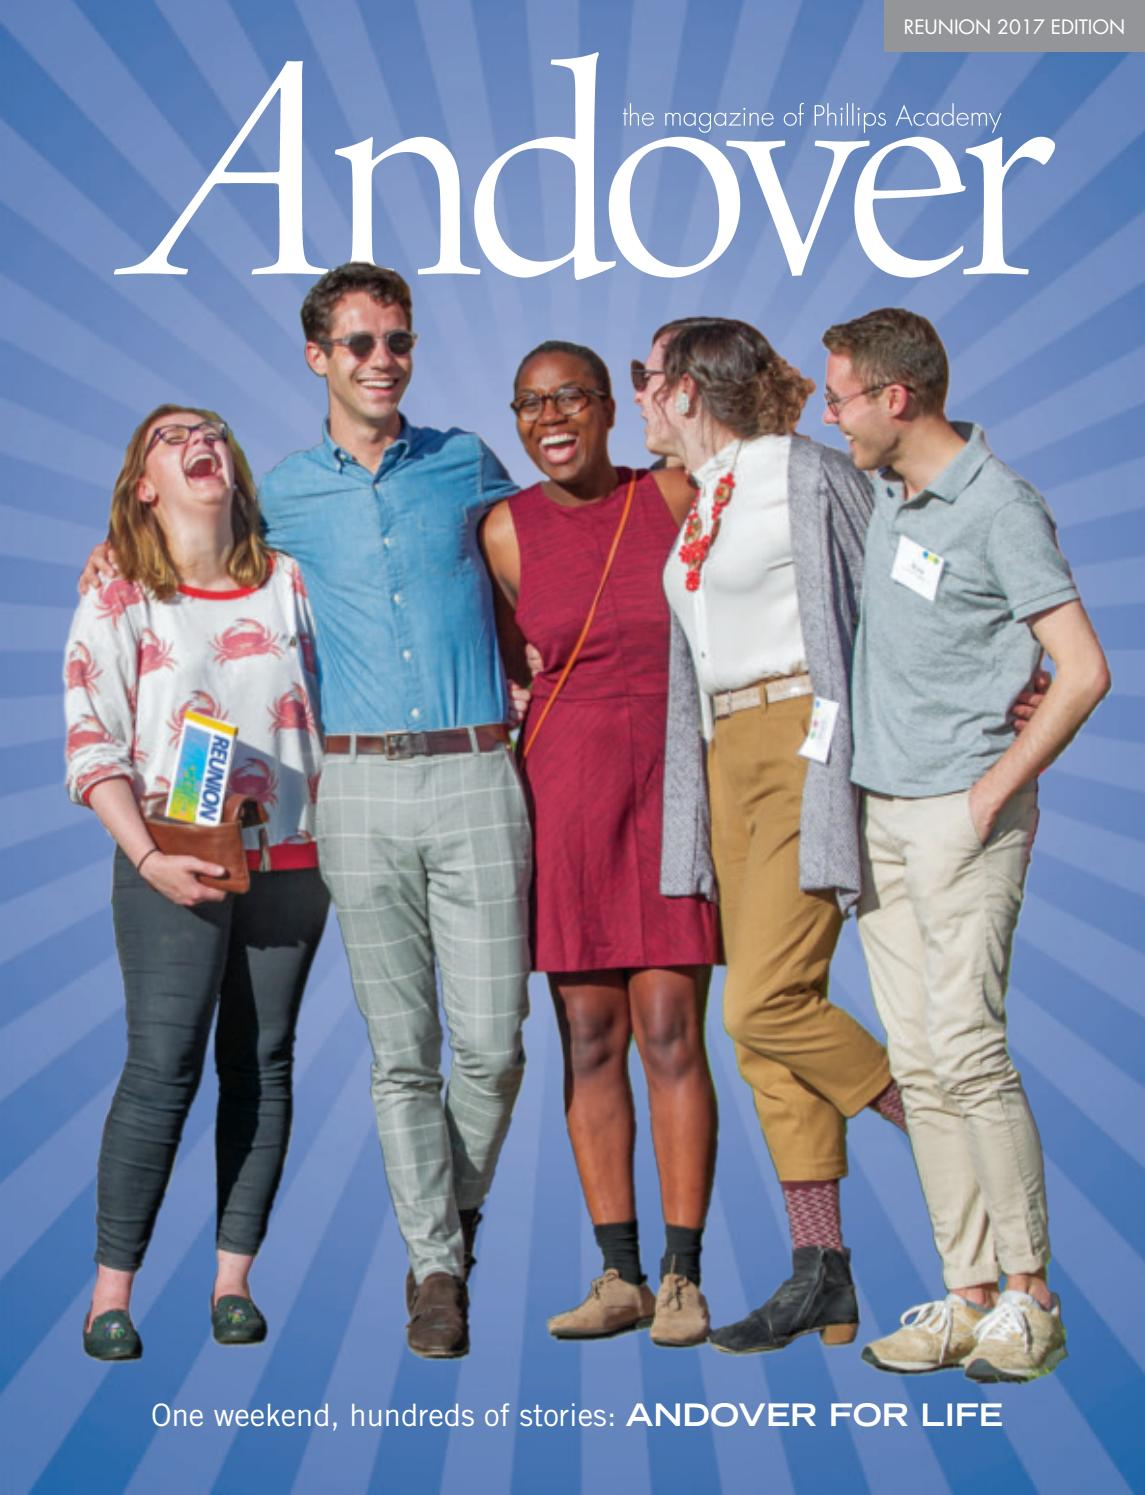 Andover magazine Reunion 2017 by Phillips Academy - issuu 97f00e57f